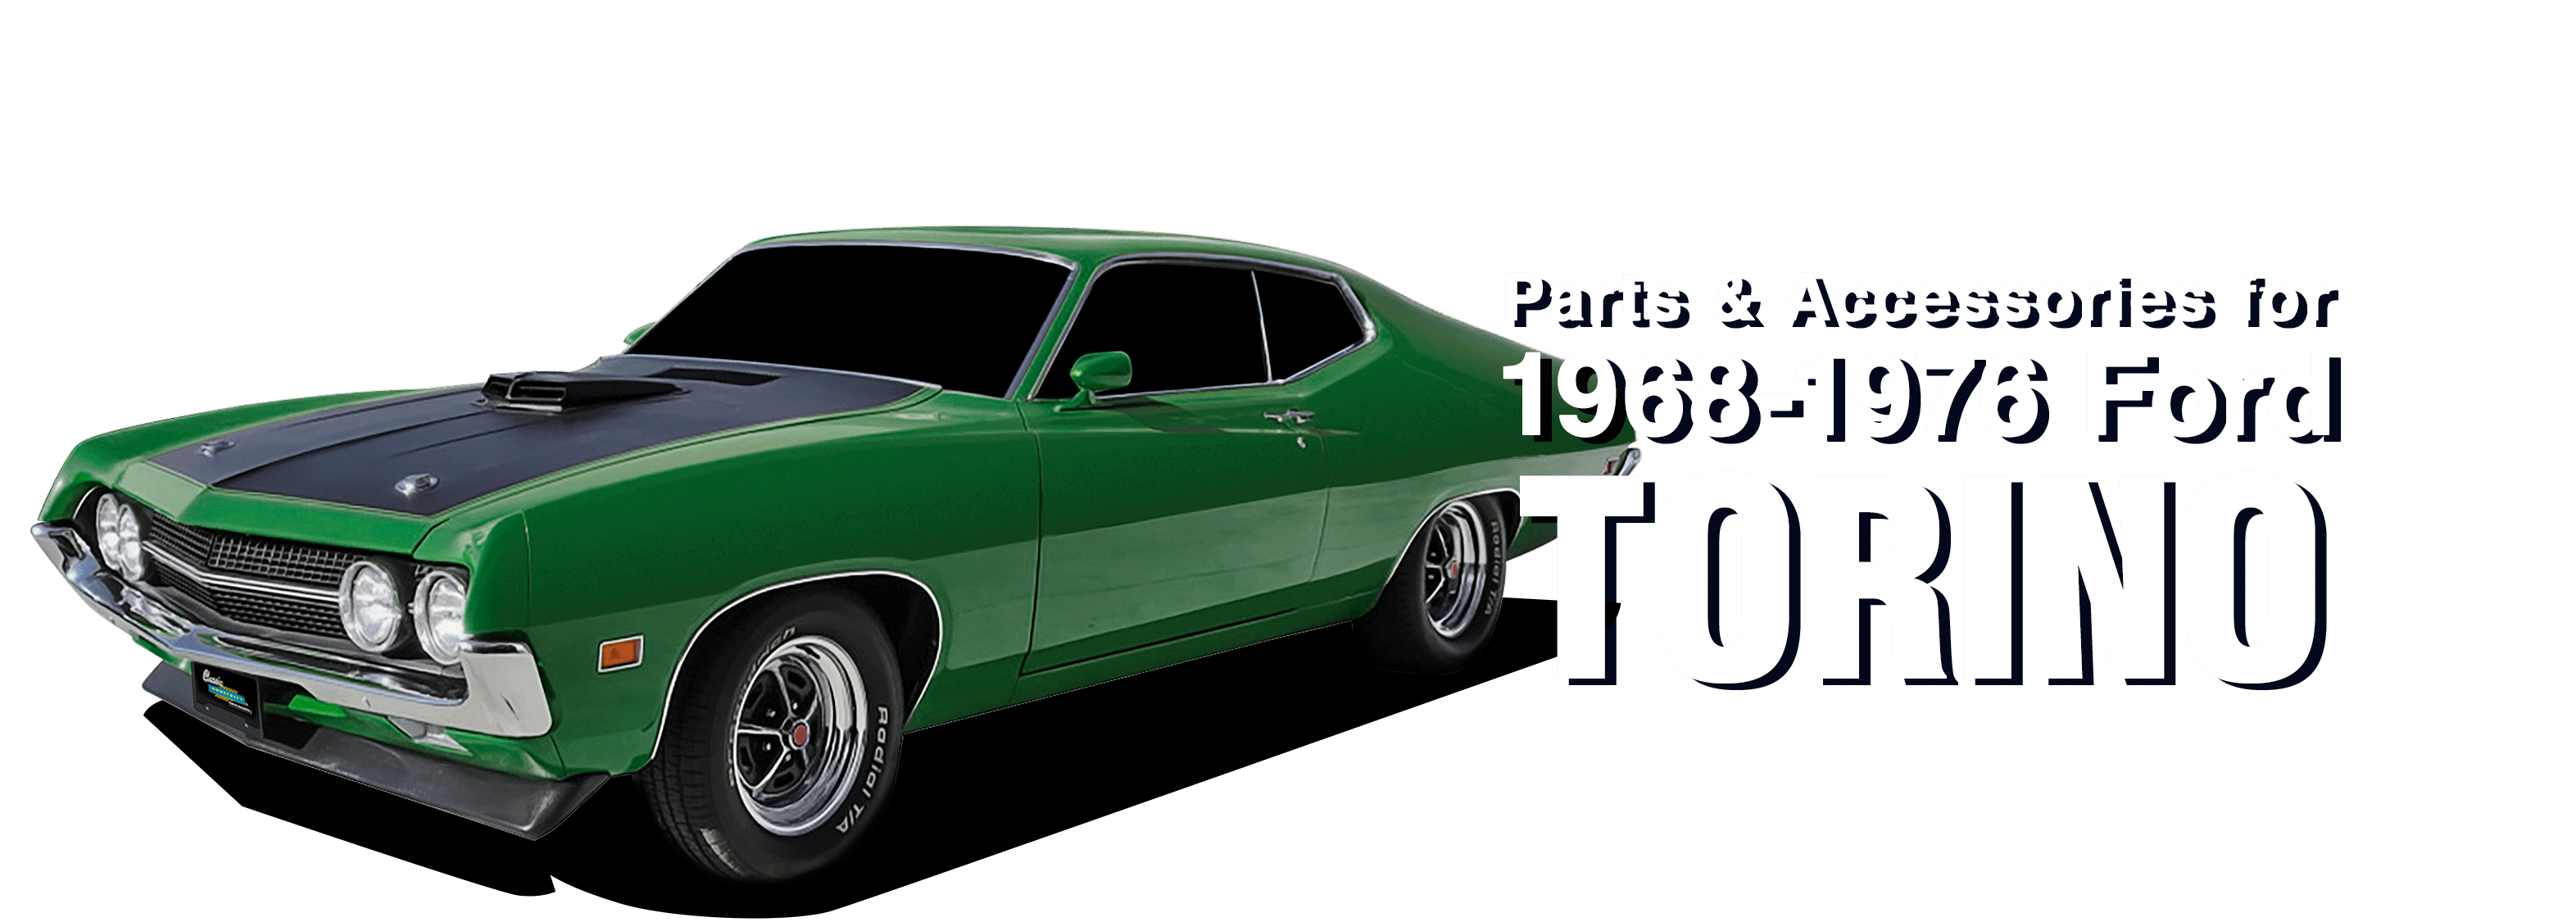 Ford-Torino-vehicle-desktop_v2